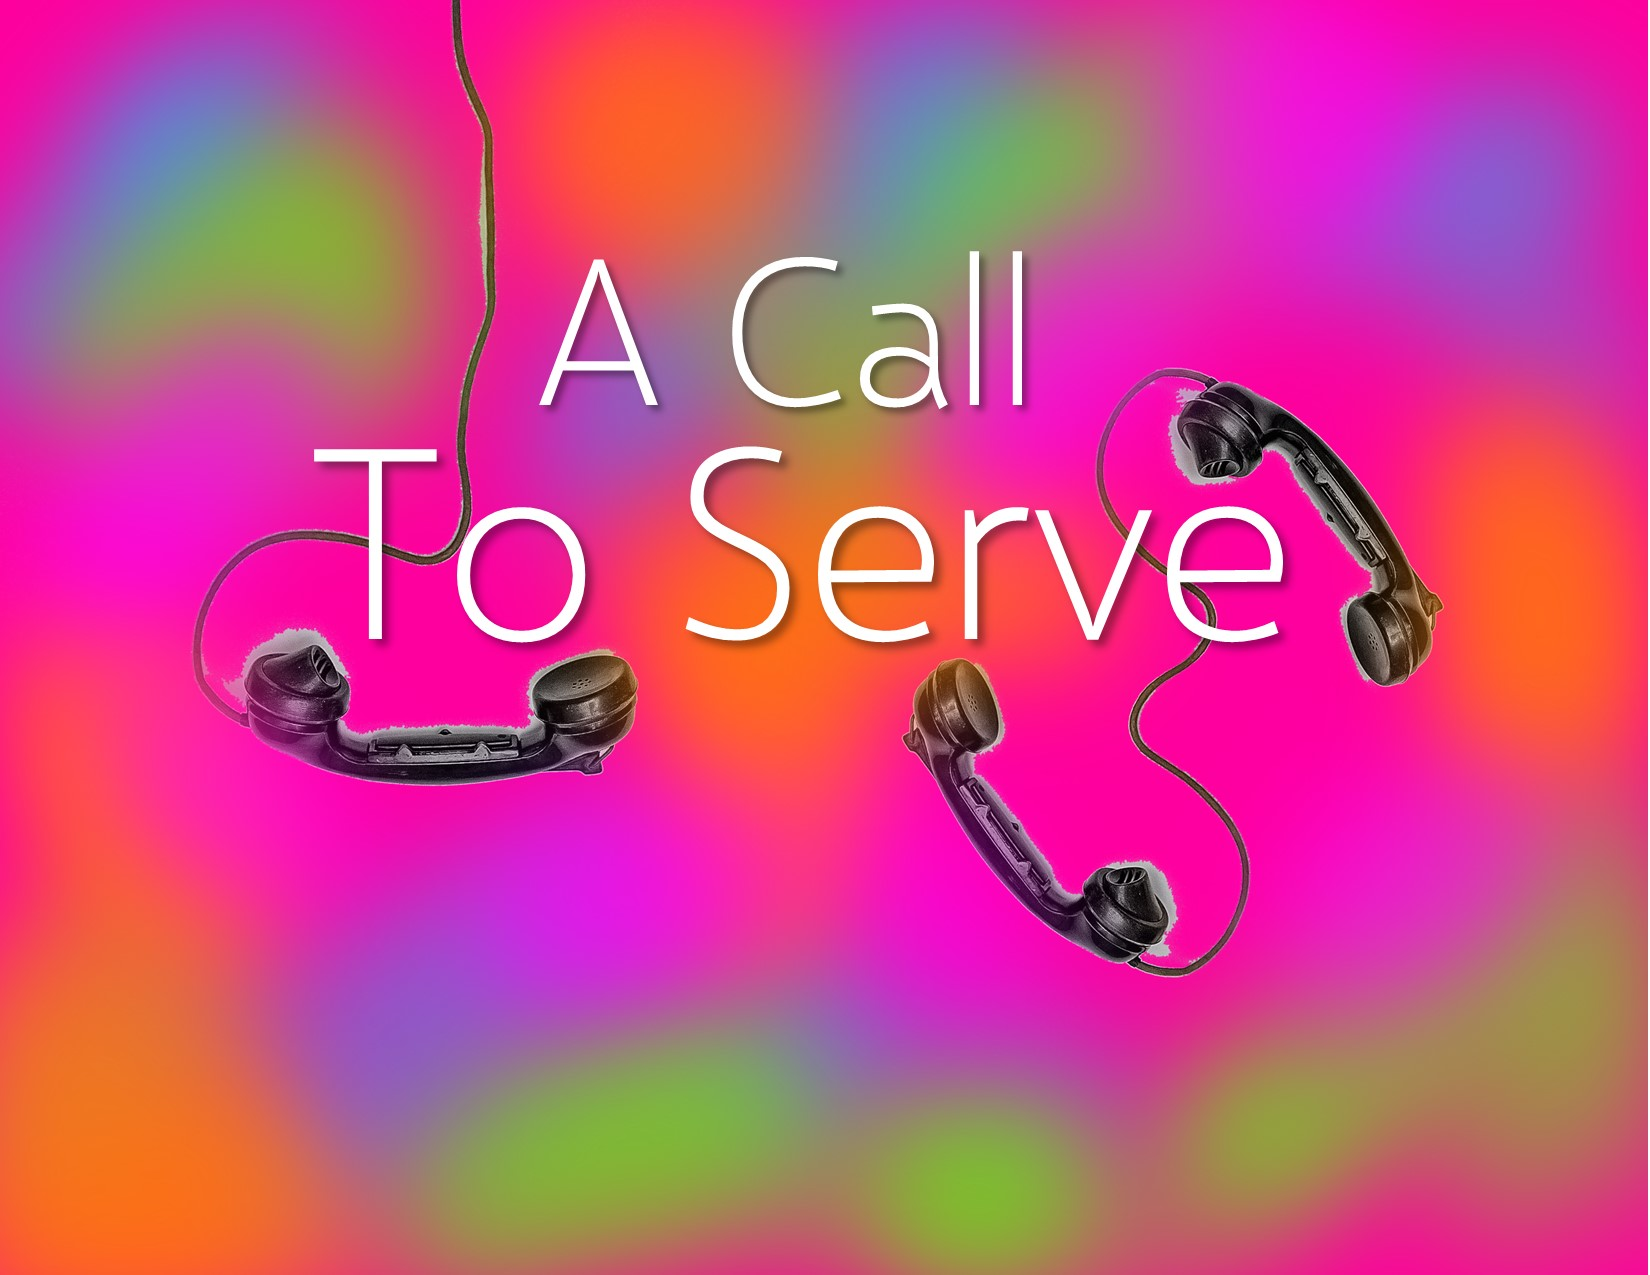 A call to serve 4